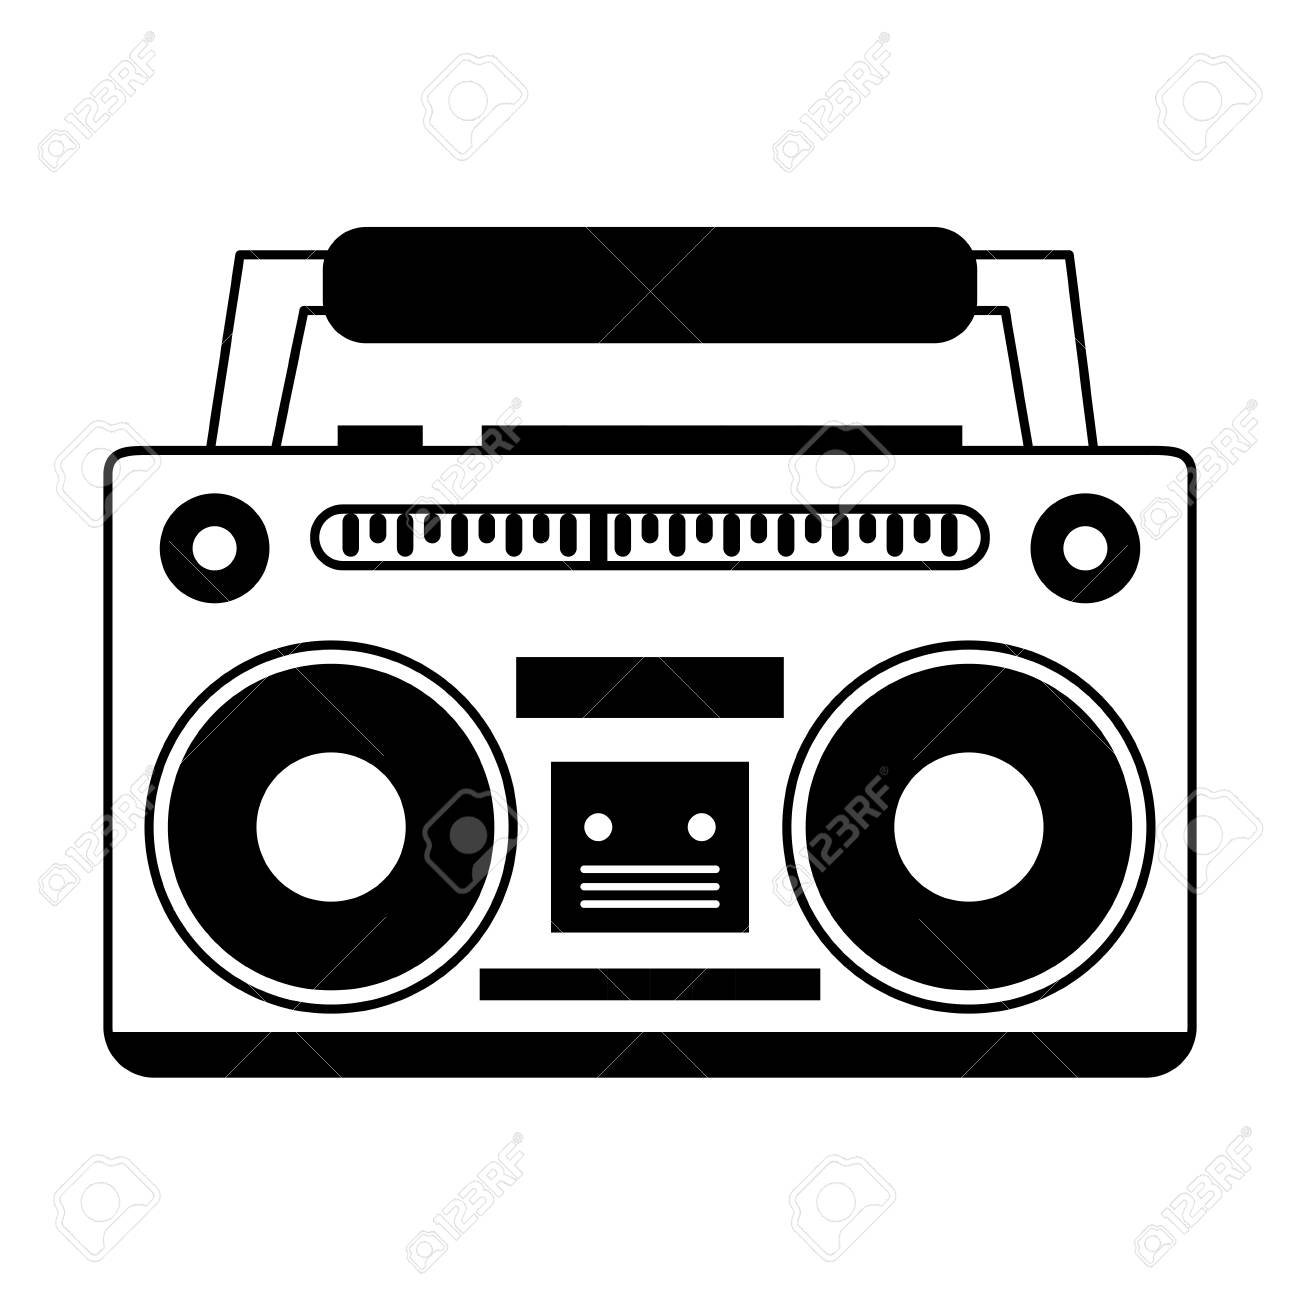 boombox icon image vector illustration design black and white rh 123rf com 80s boombox vector boombox vector icon